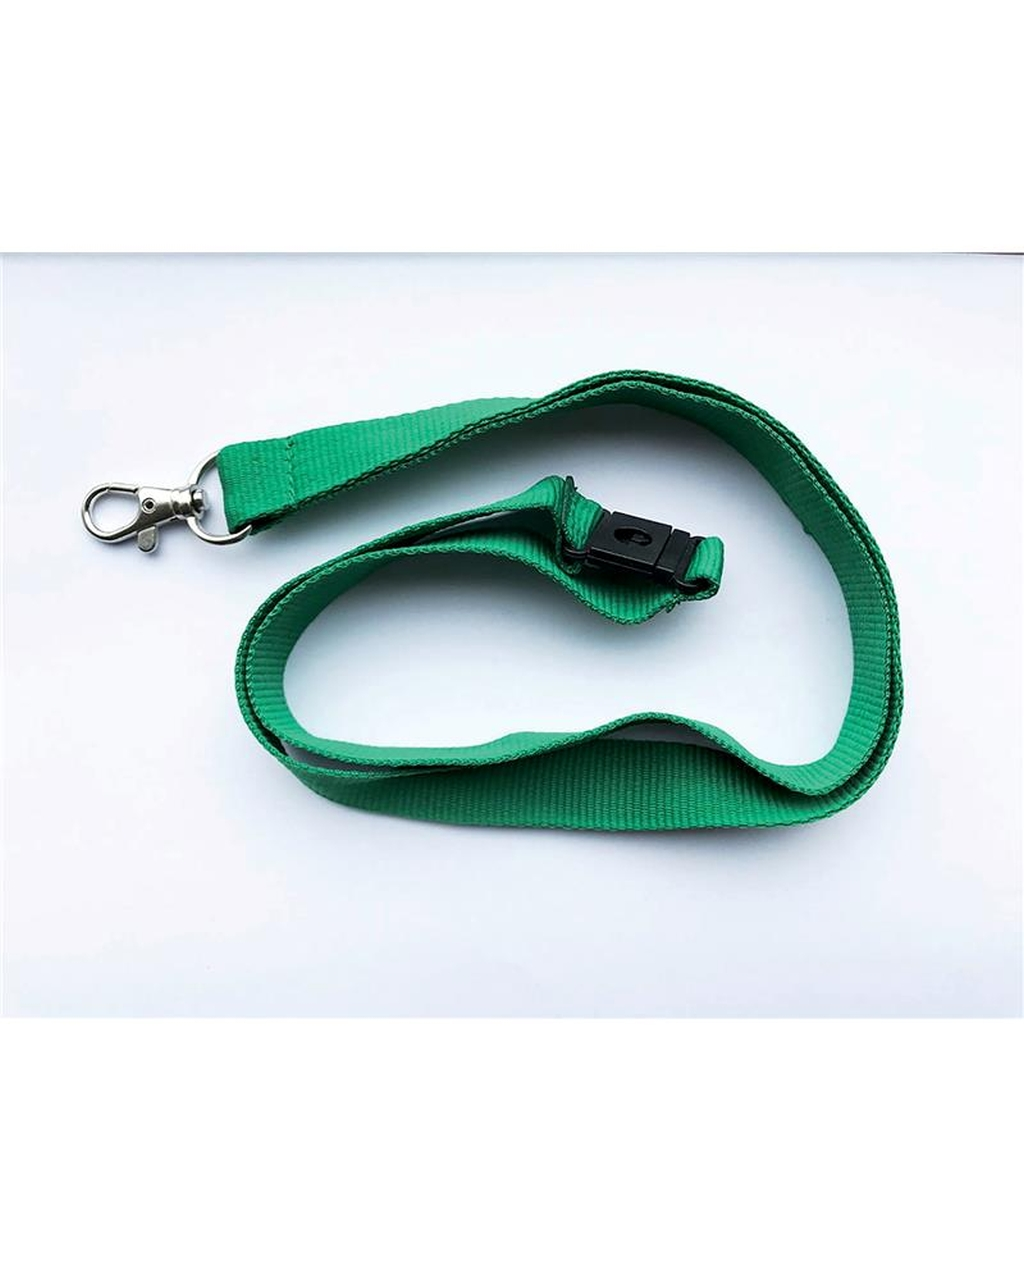 20Mm Lanyards Plain Greenpack Of 10